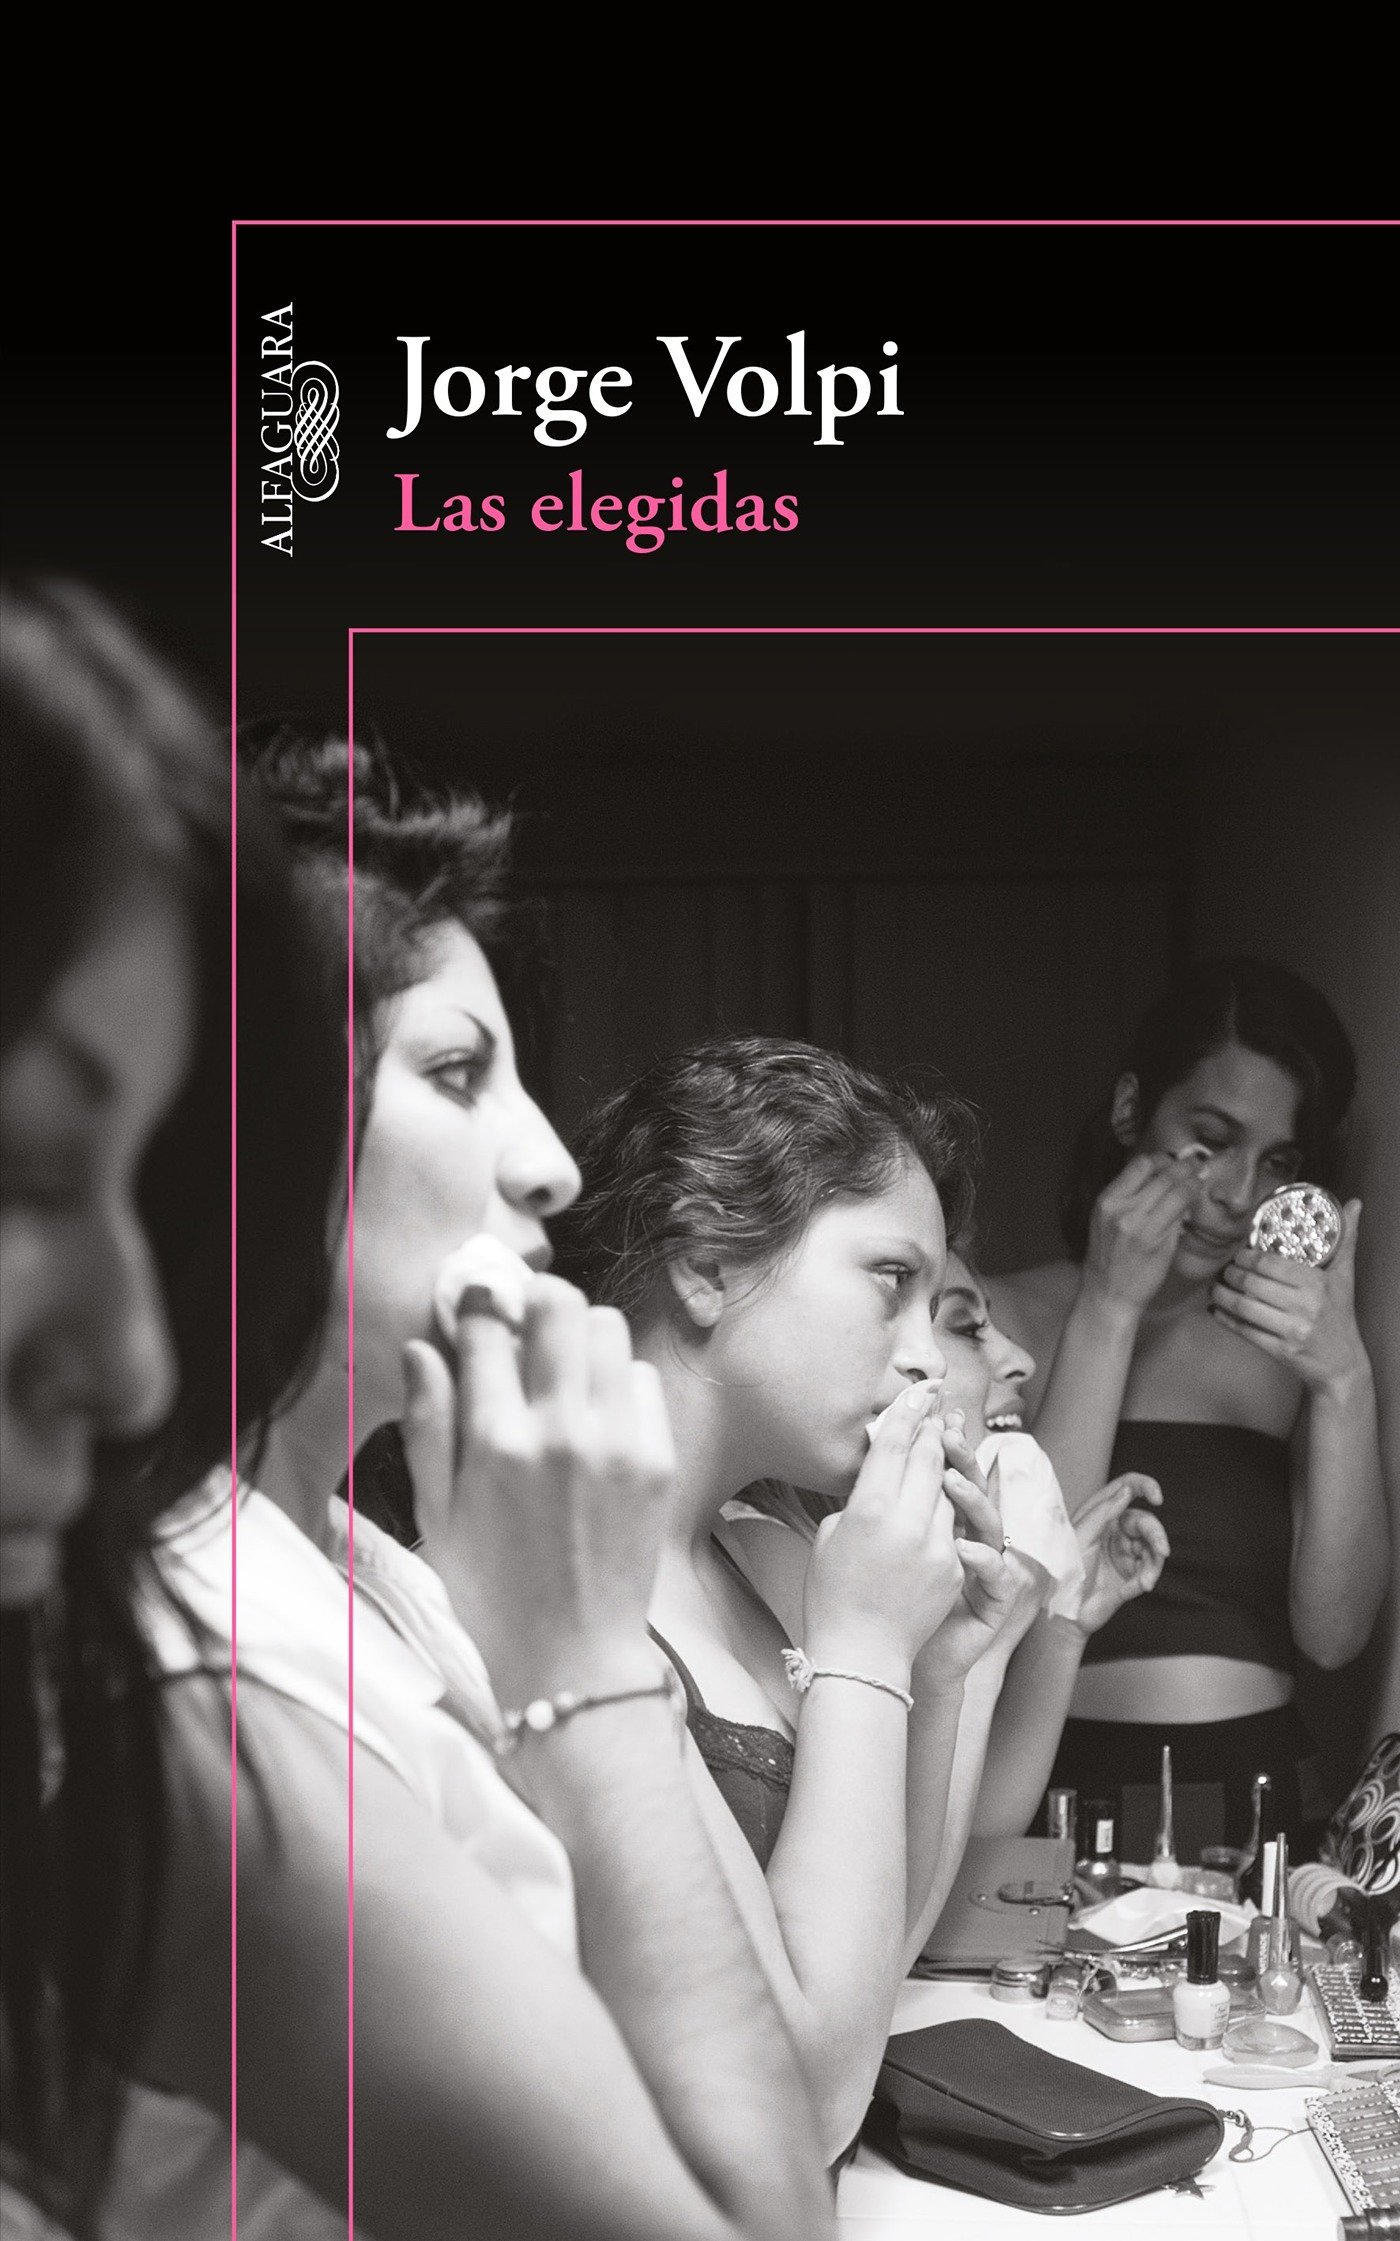 Las elegidas / The Chosen Ones (Spanish Edition) (Spanish) Paperback – November 24, 2015